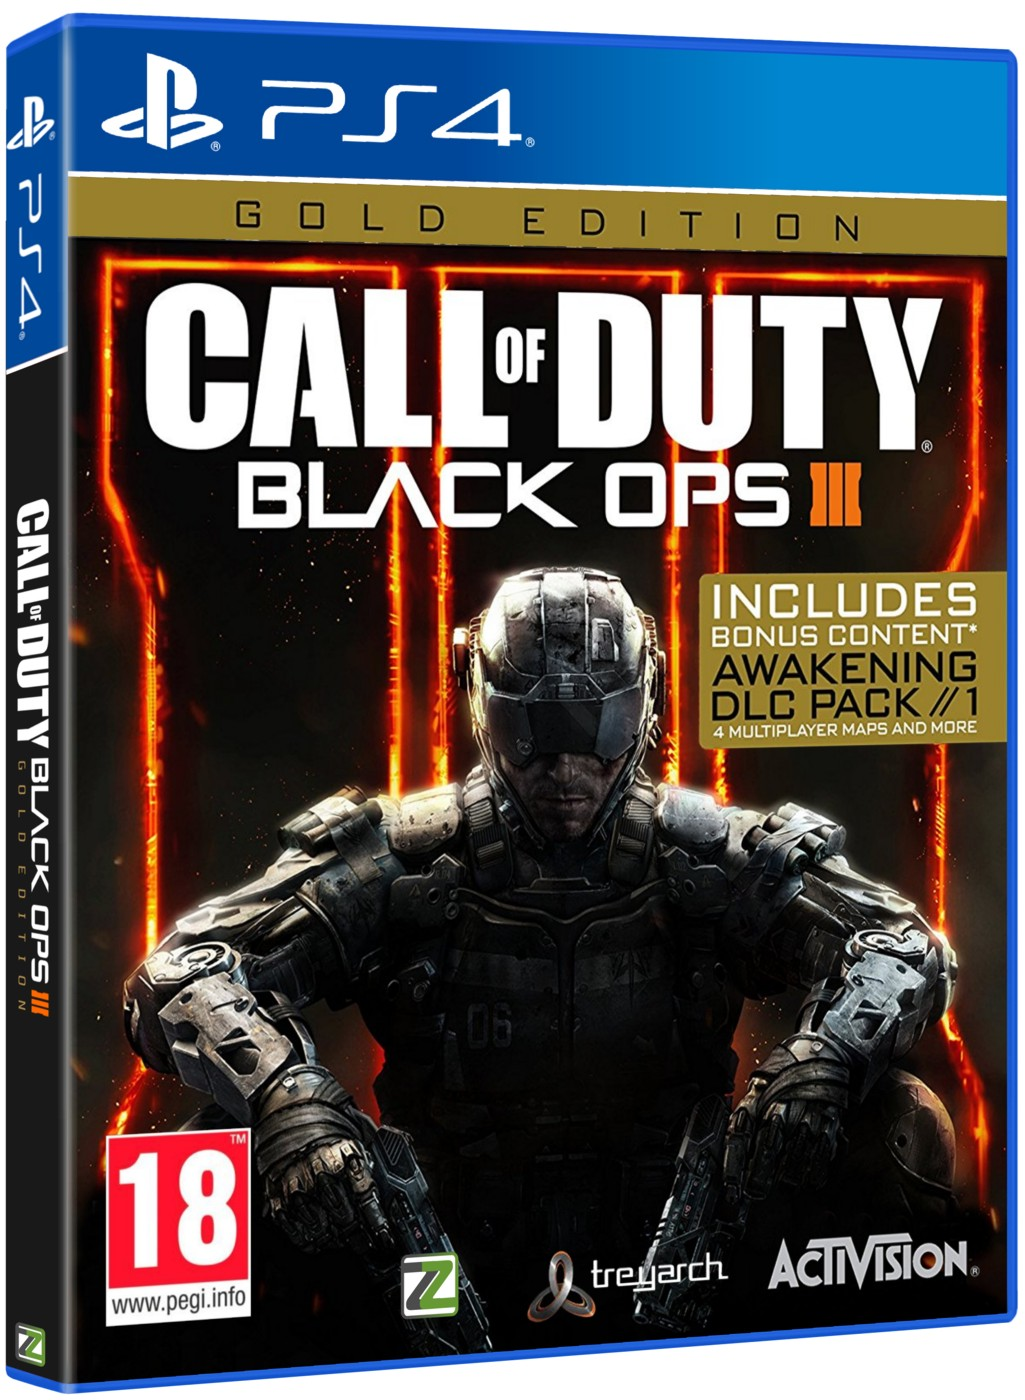 CALL OF DUTY BLACK OPS 3 GOLD EDITION - PS4